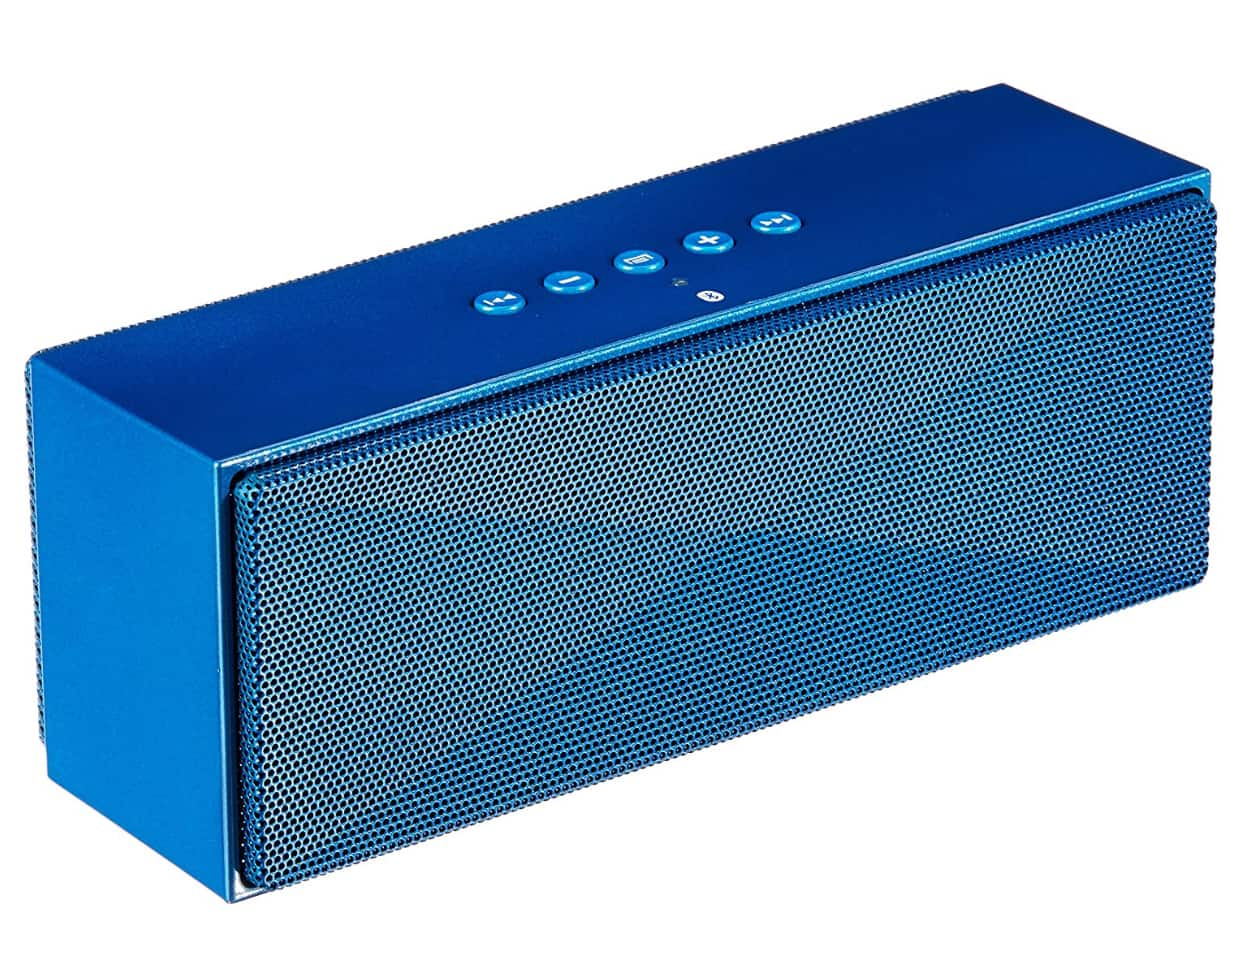 AmazonBasics Wireless Bluetooth Dual 3W Speaker with Built-in Microphone - Blue ($13.99)